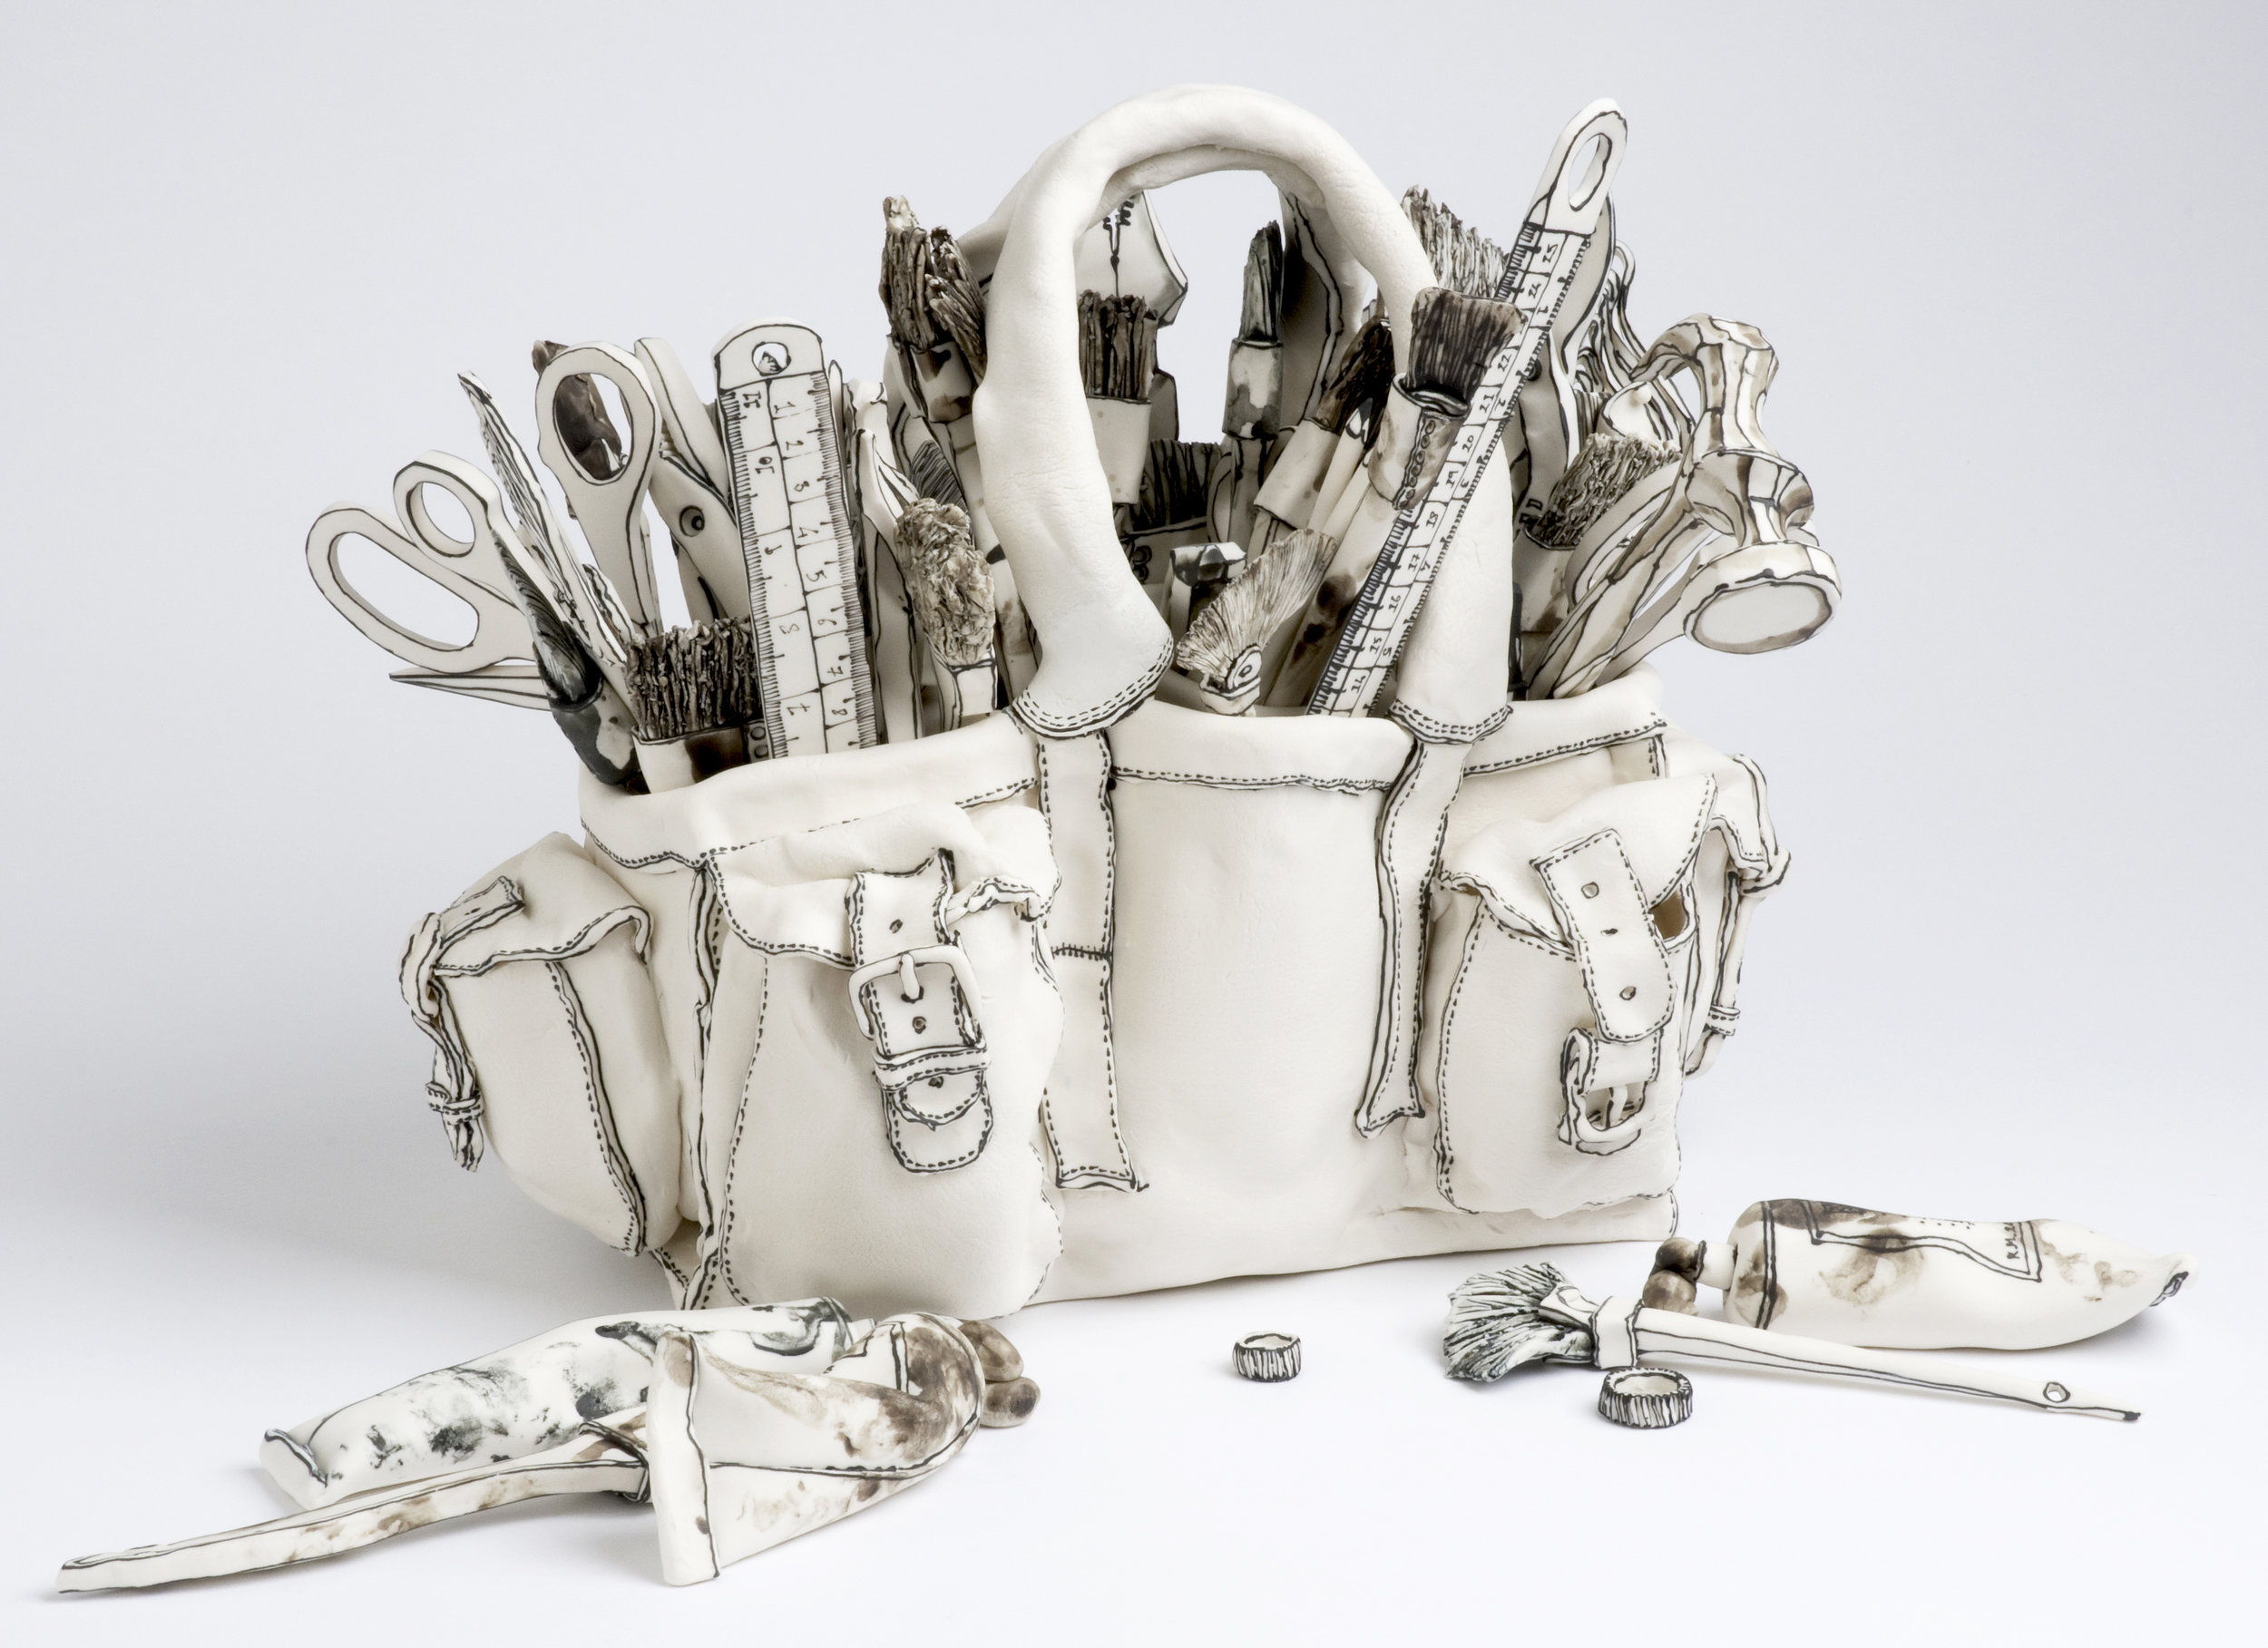 Katharine Morling  - Toolbox  - 2017 - Porcelain and Black Stain - 16 x 8 x 8 inches / 40 x 20 x 20 cm